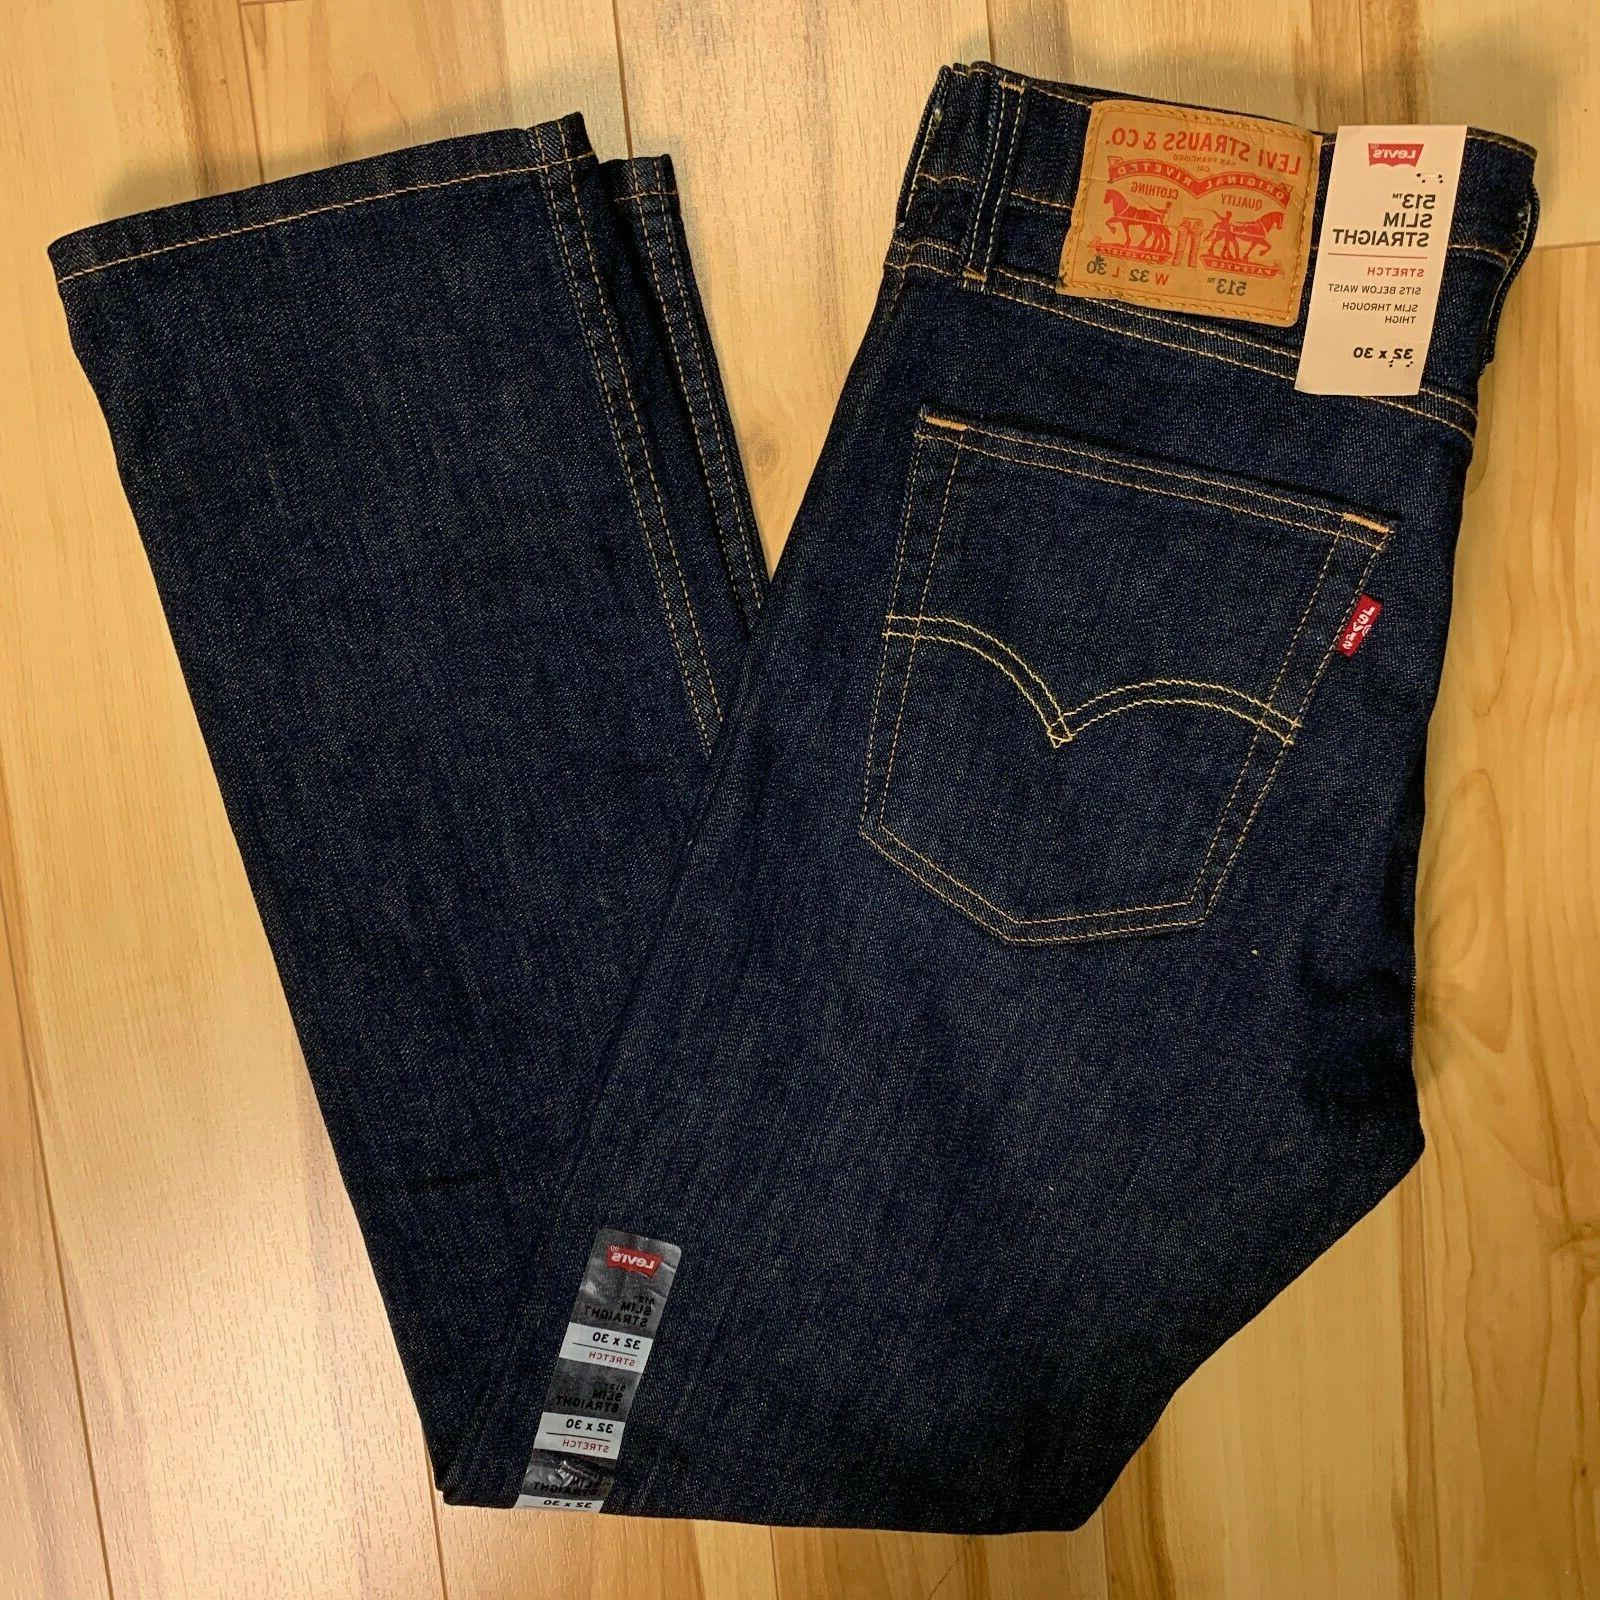 513 slim straight fit jean